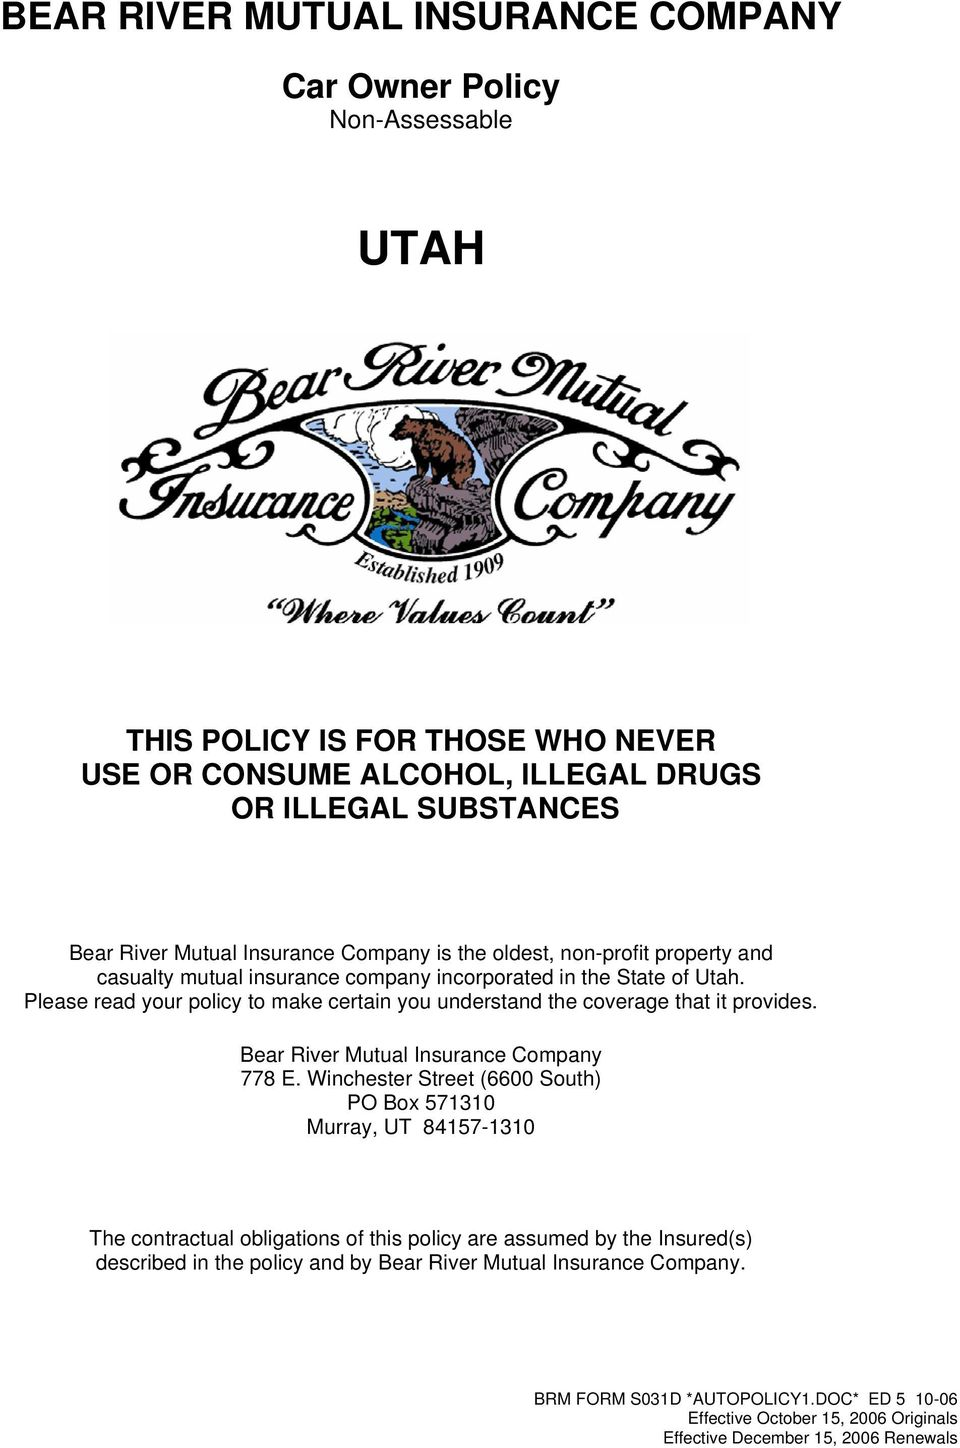 Please read your policy to make certain you understand the coverage that it provides. Bear River Mutual Insurance Company 778 E.